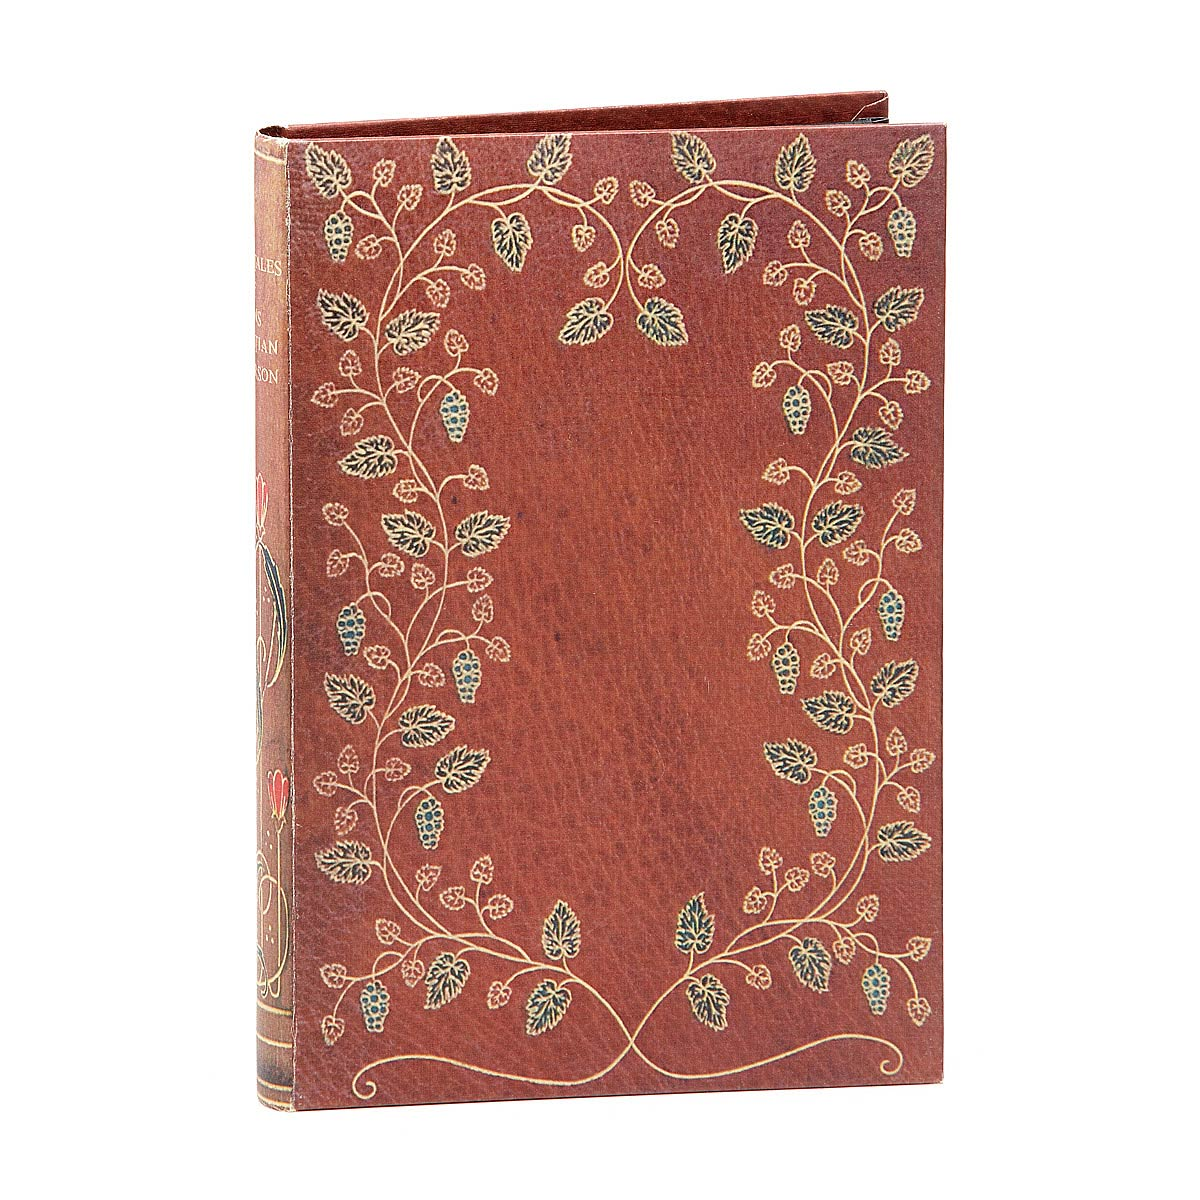 Ipad Kindle Book Case